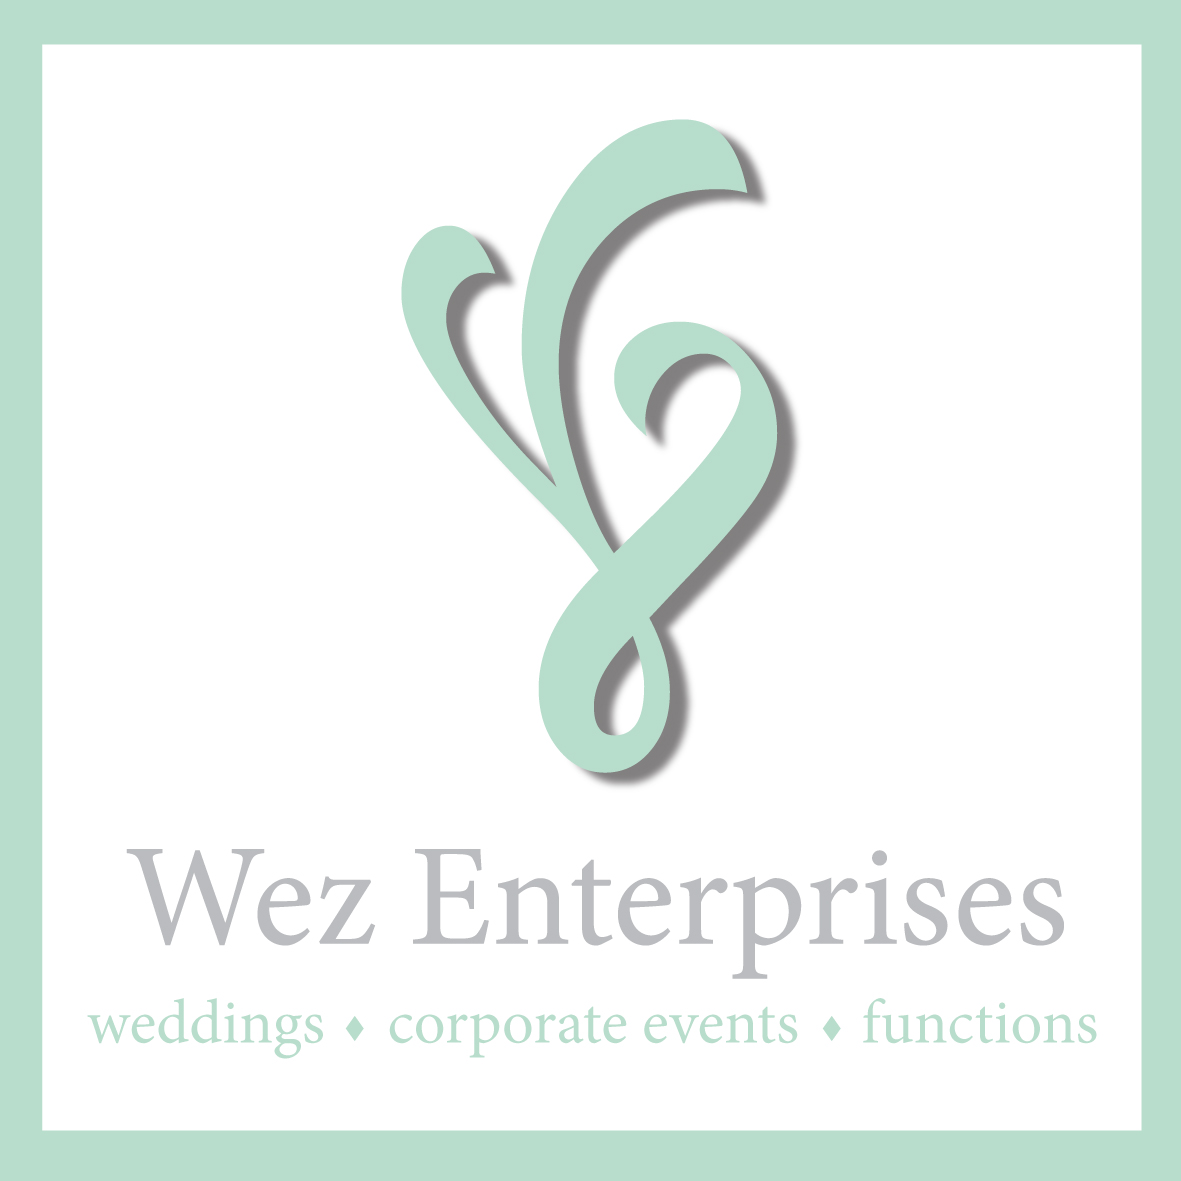 Wez Enterprises